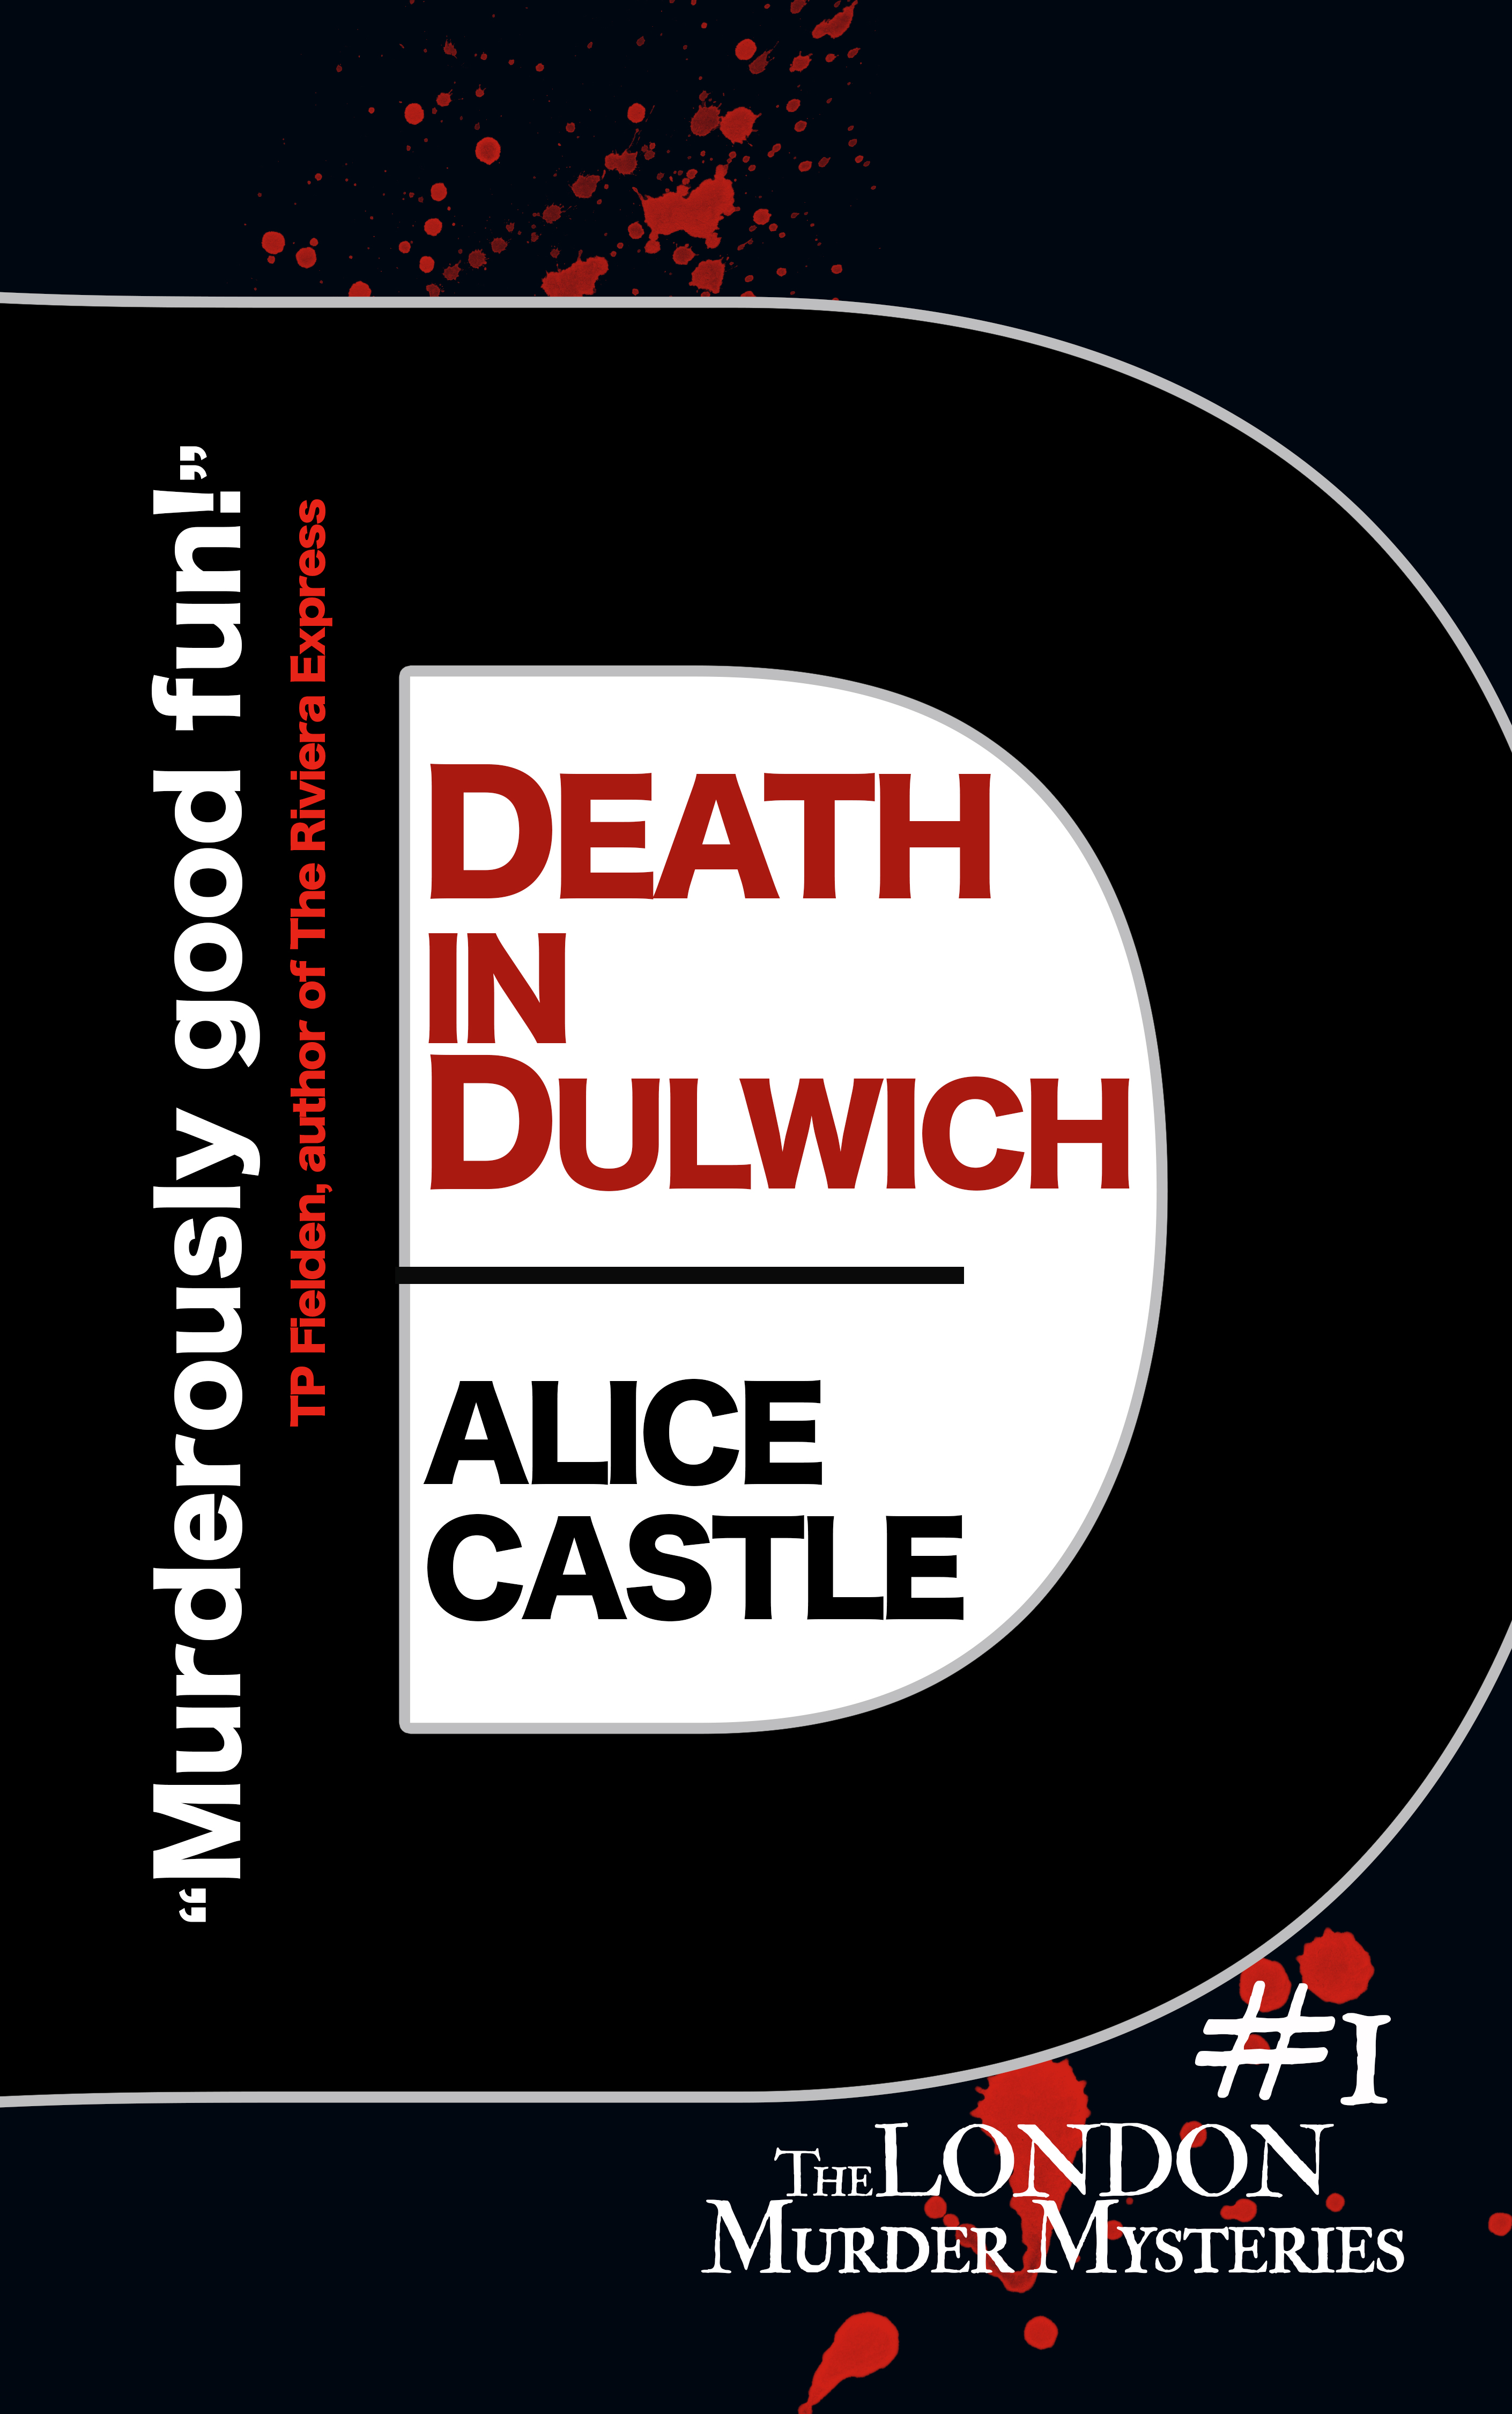 Death in Dulwich and the London Murder Mystery series